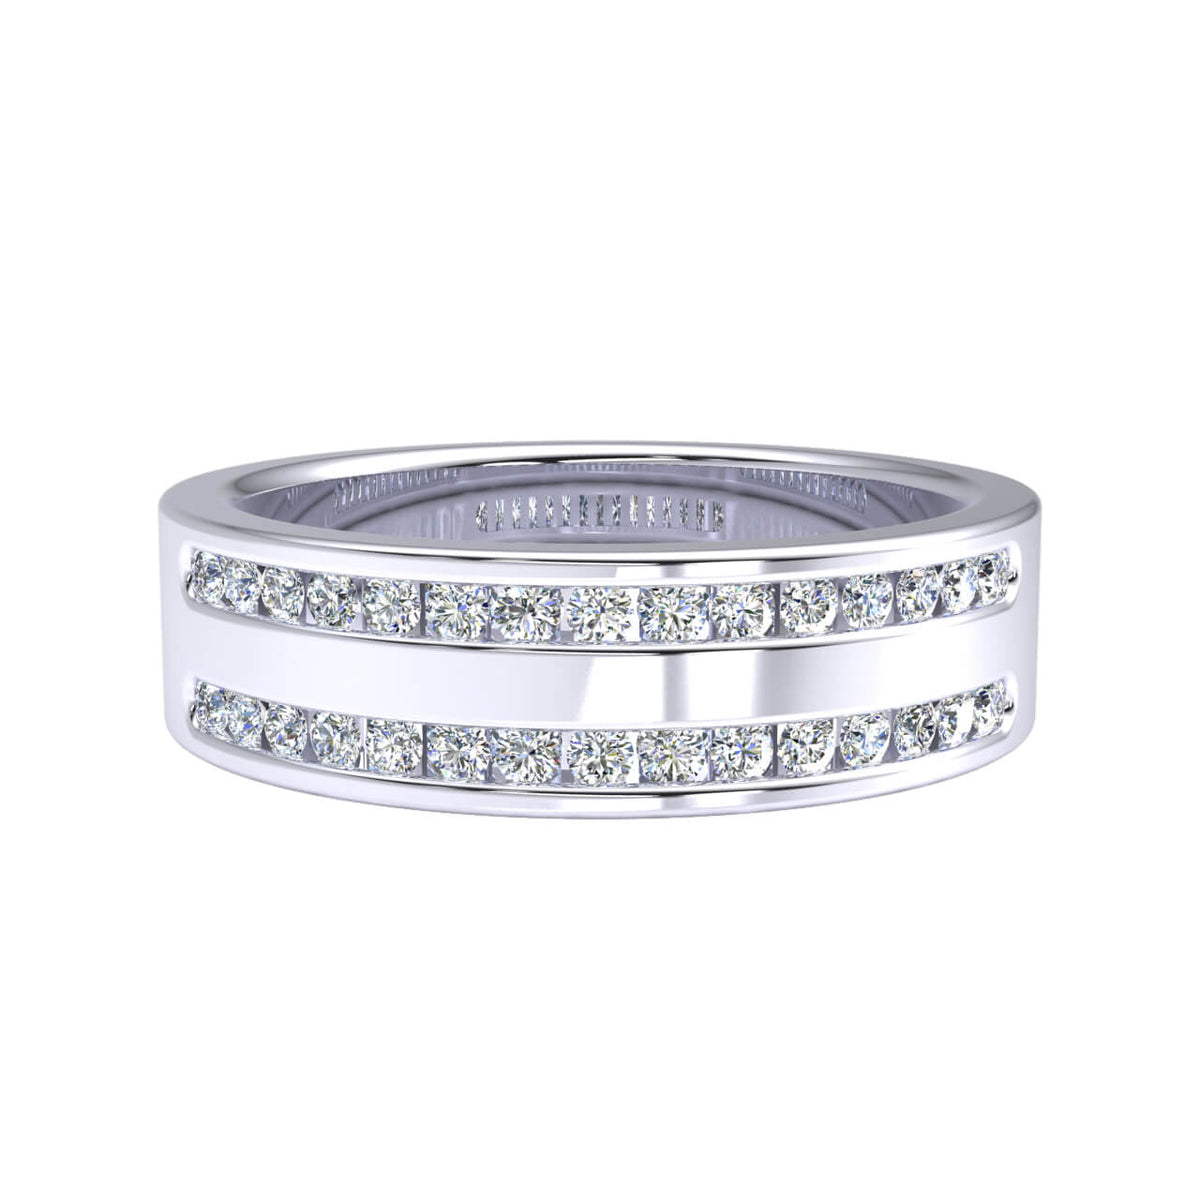 0.45 Ct Round FG VS Diamond 2 Row Fancy Wedding Band For Men 14k Gold